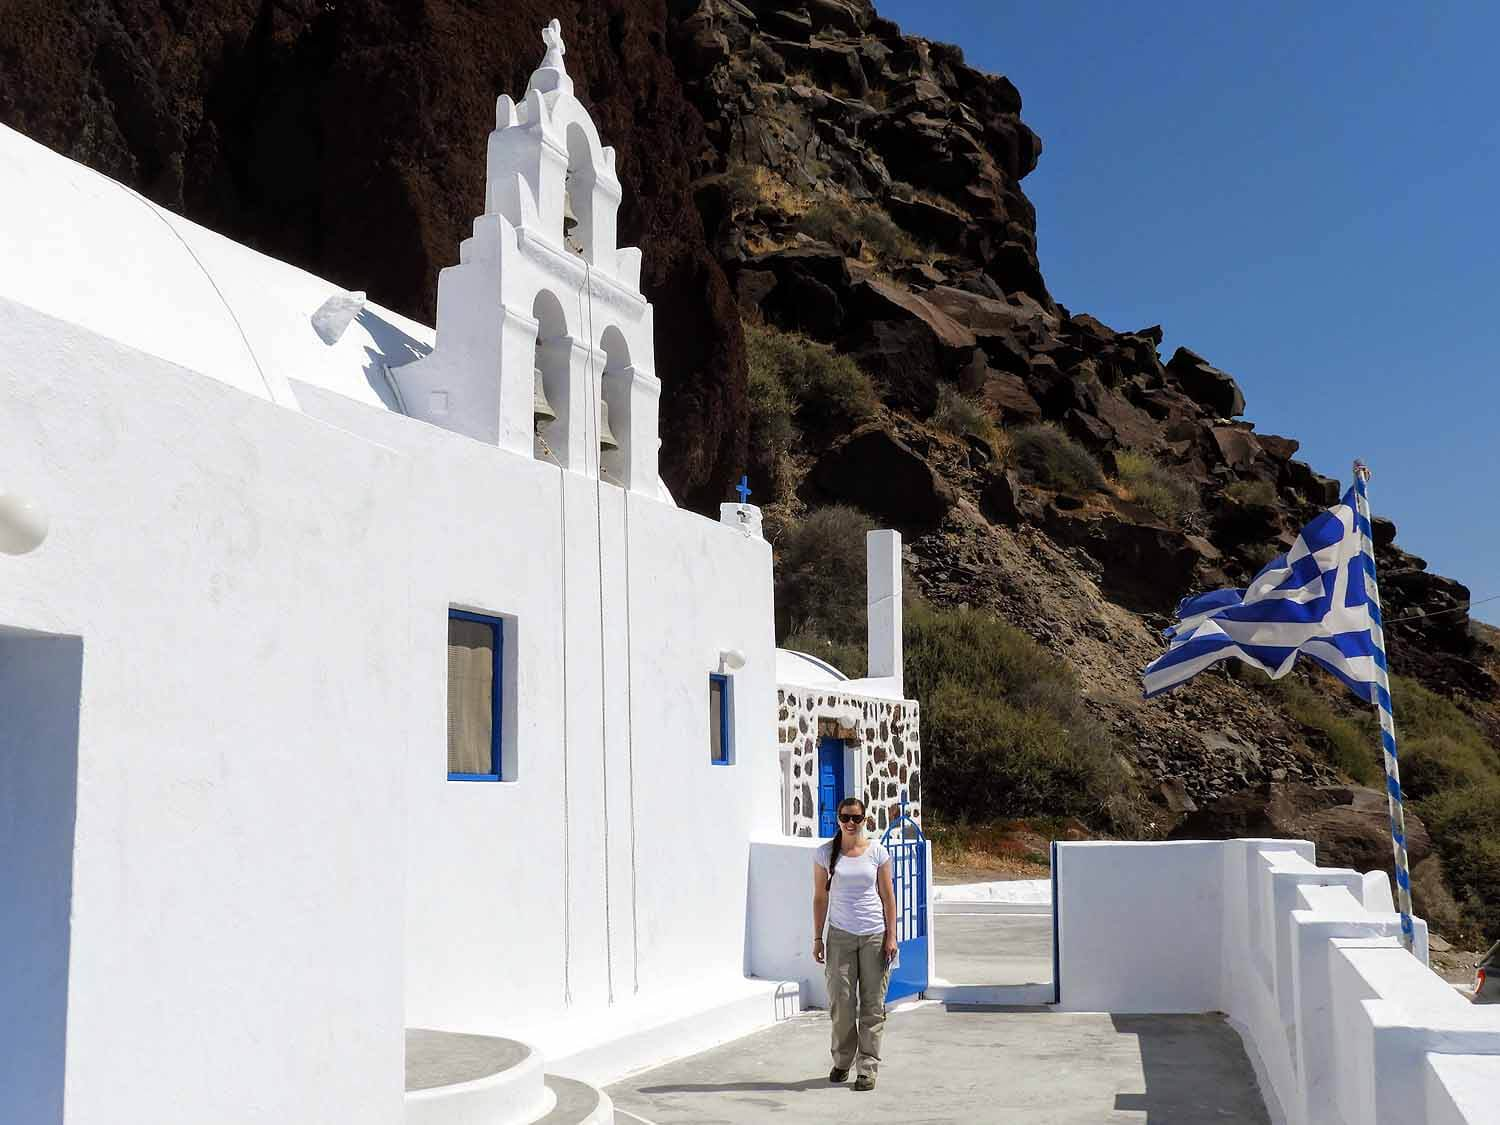 greece-santorini-red-orthadox-church-beach-greek-flag.jpg